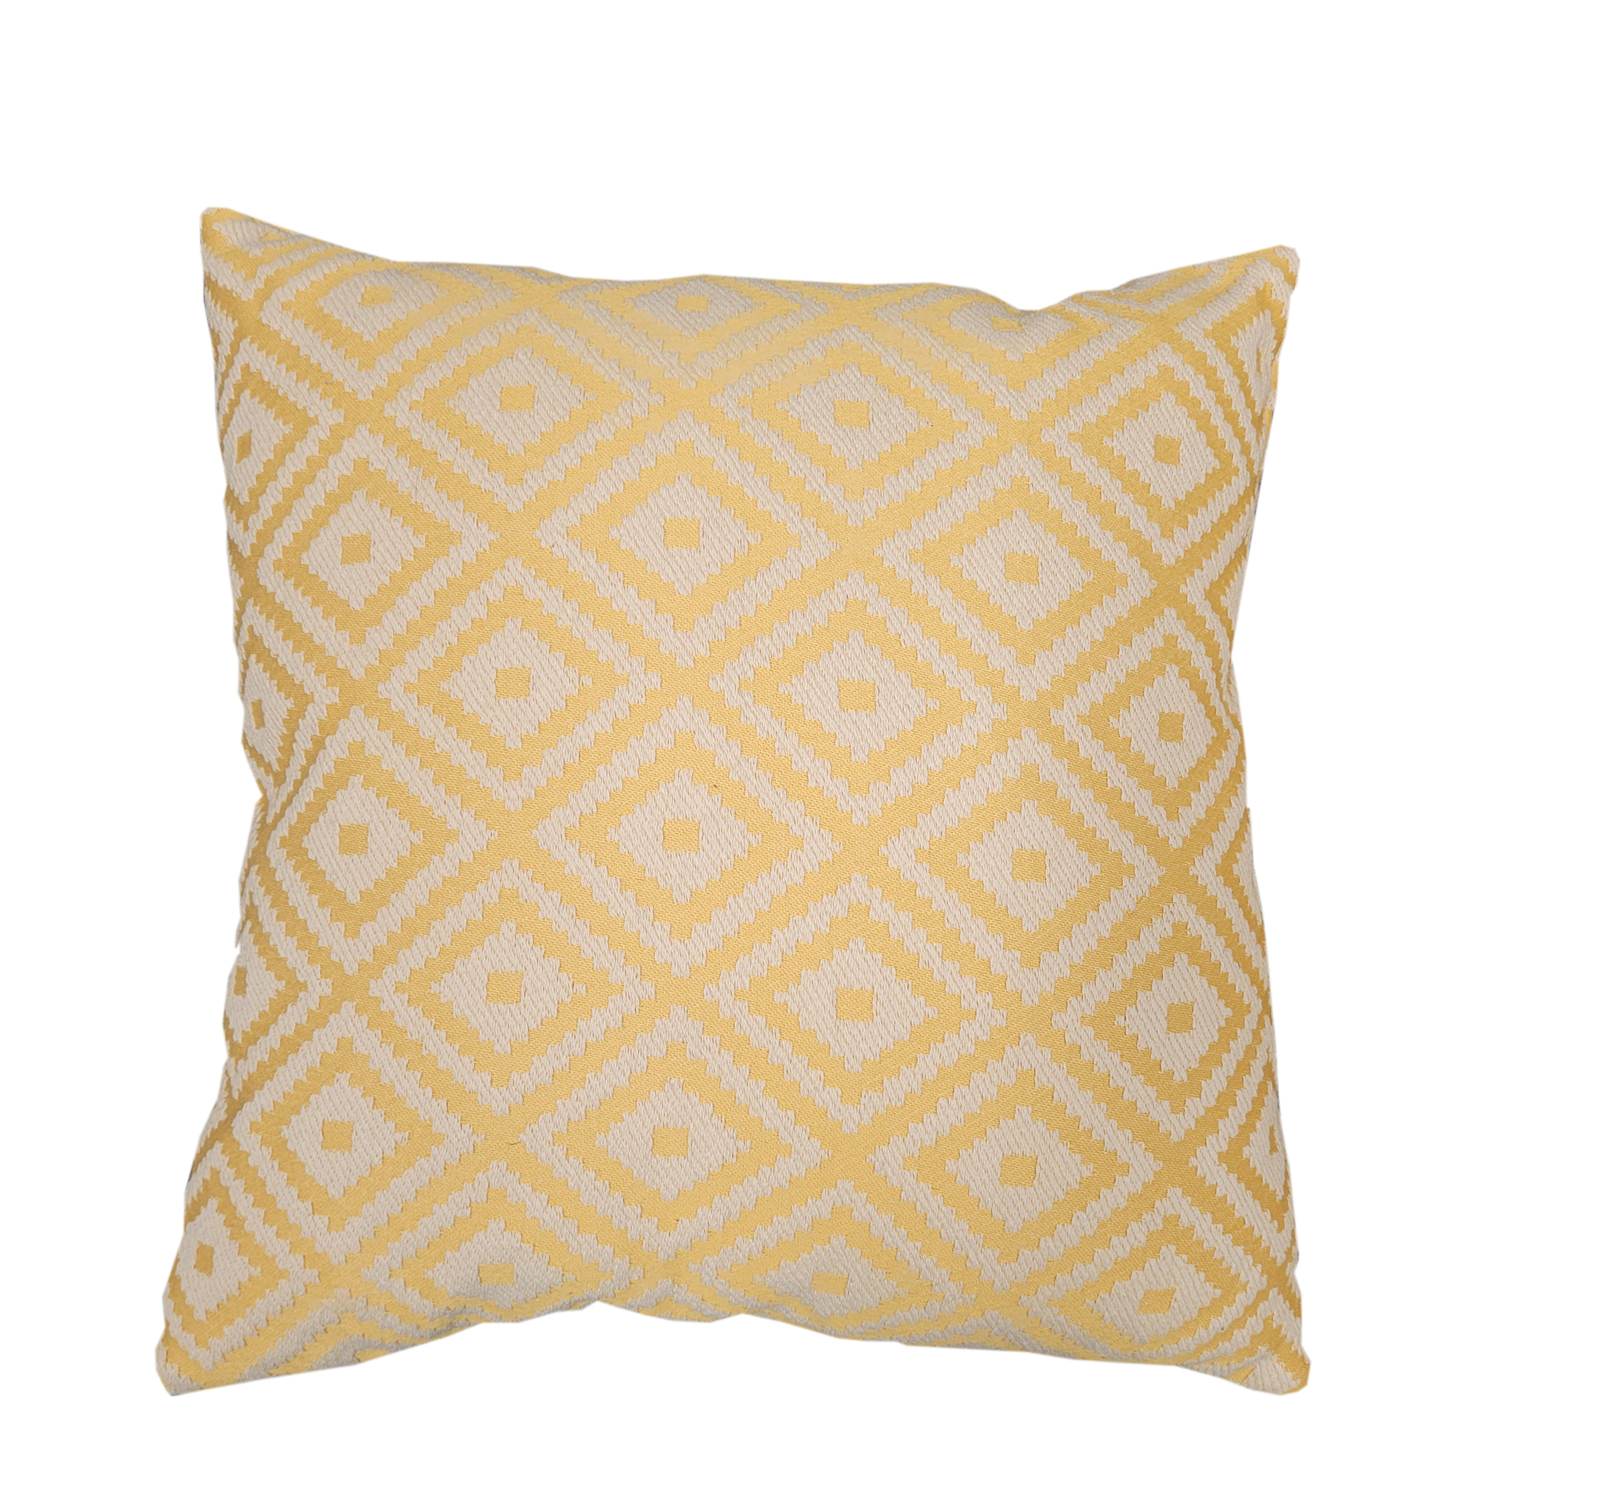 'Tribe' cushion from